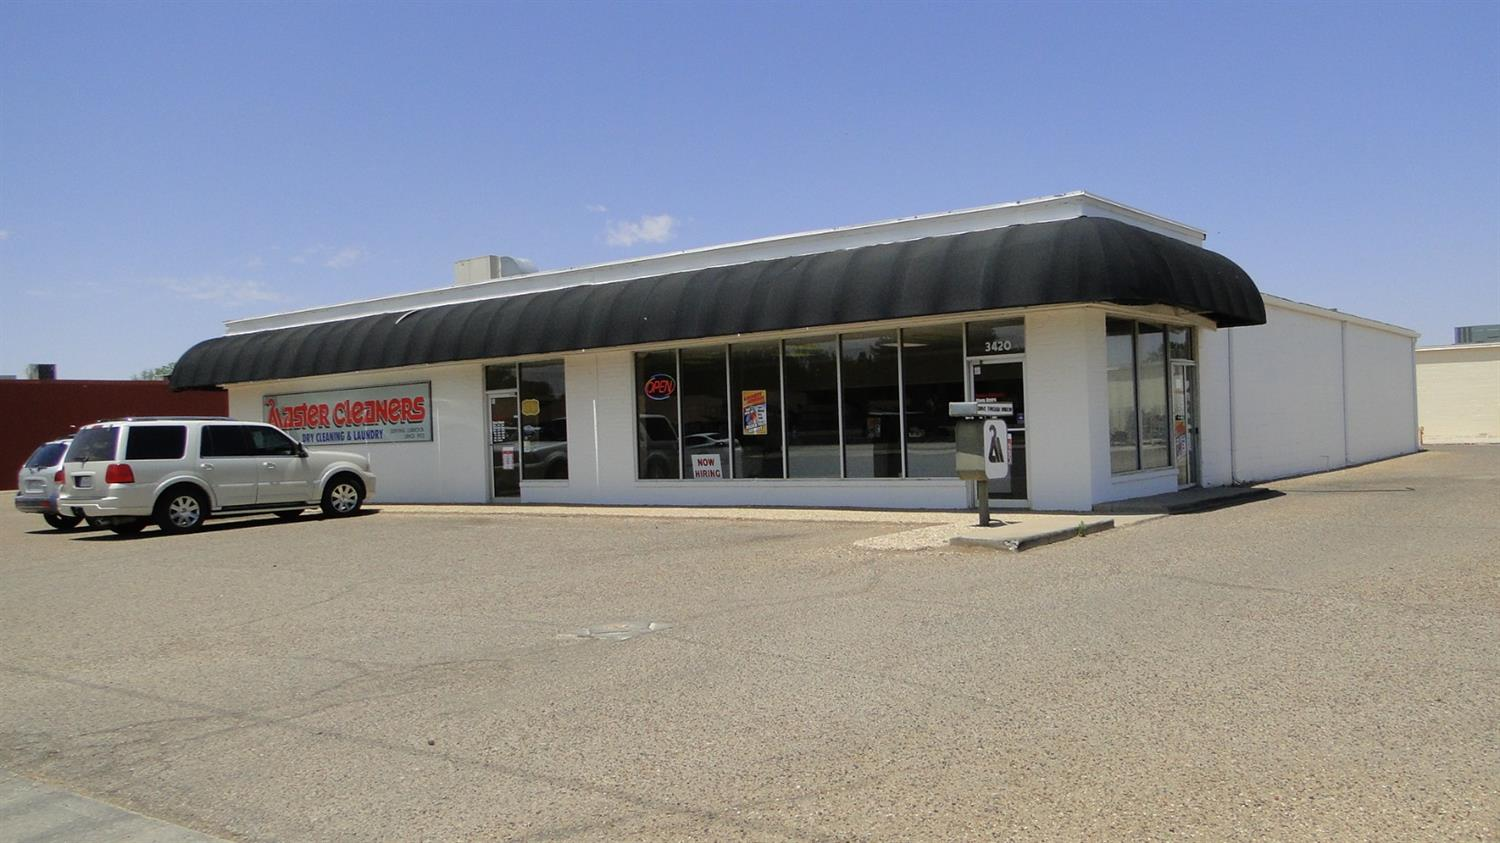 Great location near the corner of 82nd St. and Indiana Ave. Owner will lease back approximately 1/3 of the building operated as Master Cleaners drop-off and pickup station. Approximately 3,600 of building unfinished can have multiple retail uses. Ample parking on west side of building.